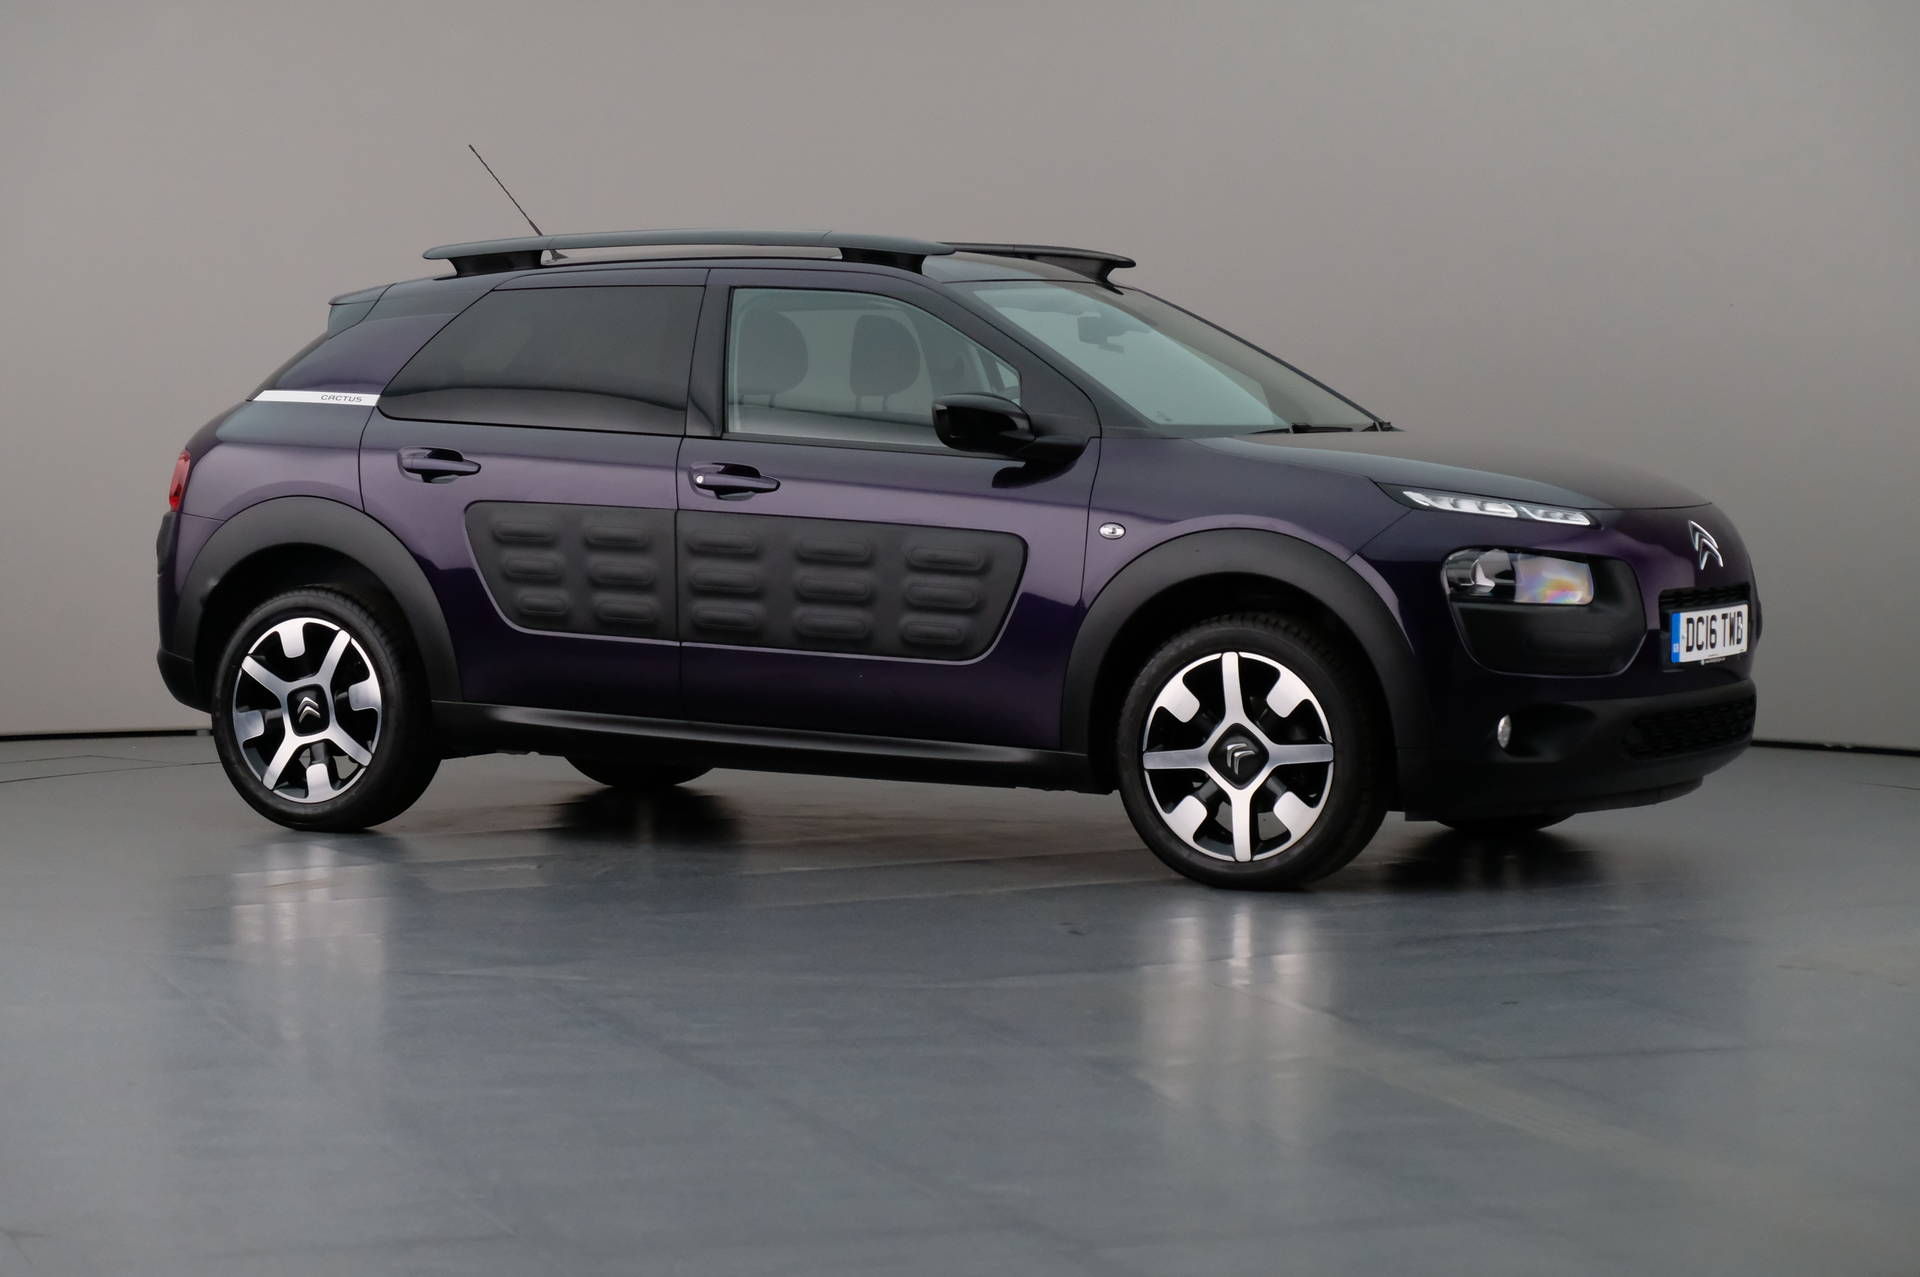 Citroën C4 Cactus 1.6 Blue HDi Flair Edition 5dr, 360-image34